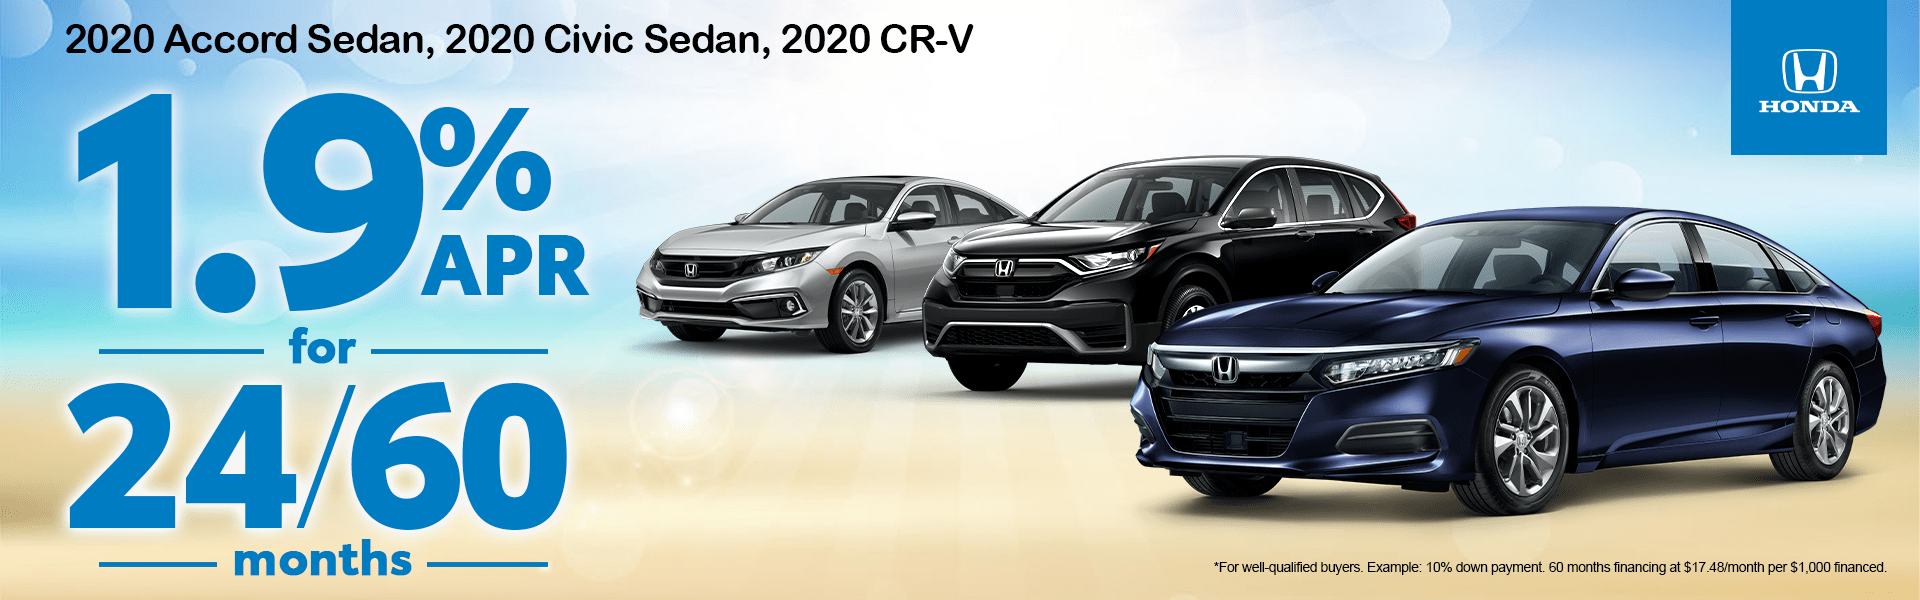 1.9% APR for 24/60 Months on a 2020 Accord Sedan, 2020 Civic Sedan, 2020 CR-V